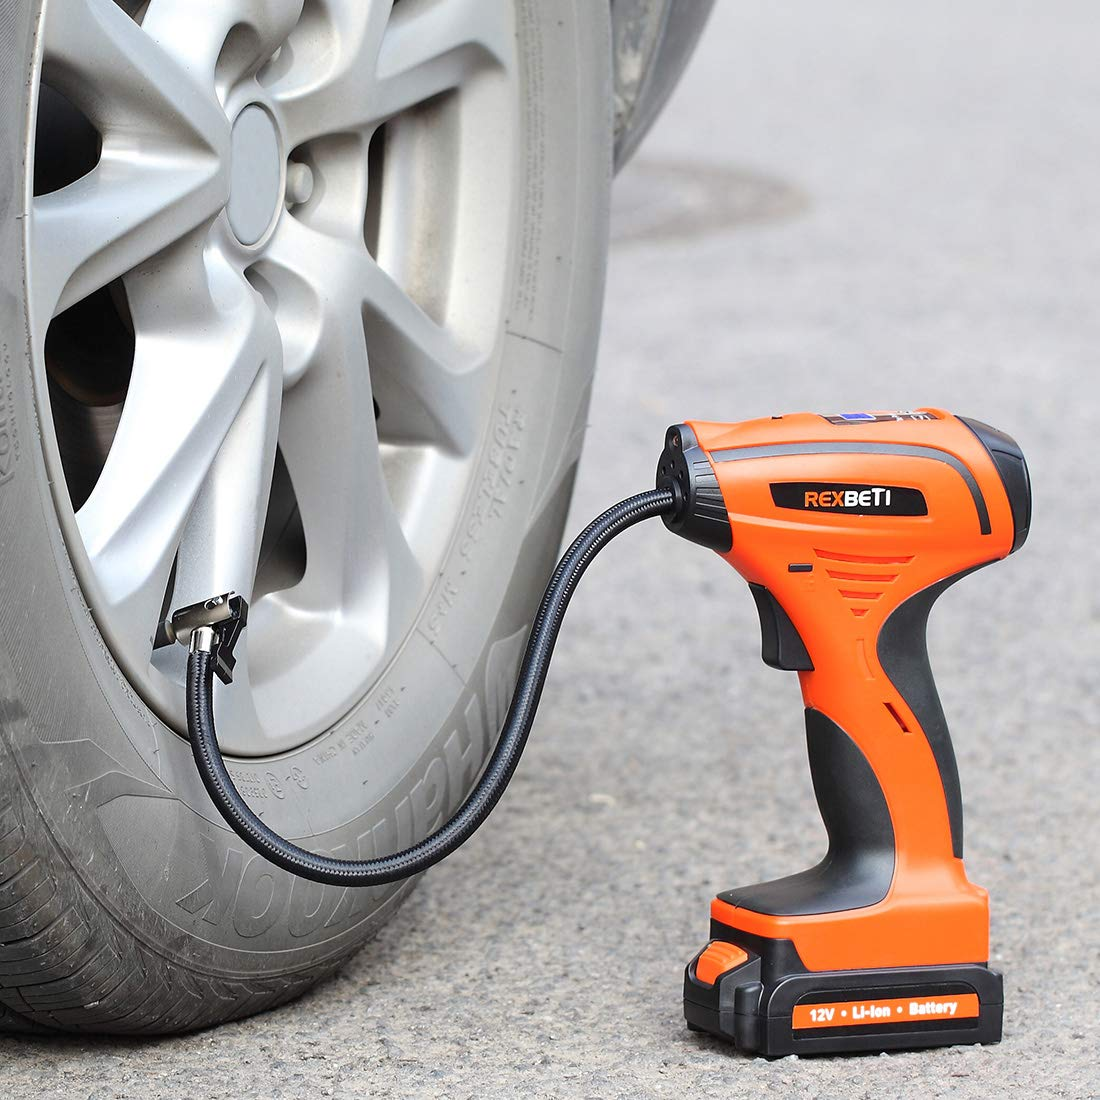 REXBETI Tire Inflator, Portable 12V Cordless Air Compressor for Tires, with Rechargeable Lithium-ion Battery and 12V Car Power Adapter, Easy to Read Digital Pressure Gauge, LED Lighting, 150PSI by REXBETI (Image #2)